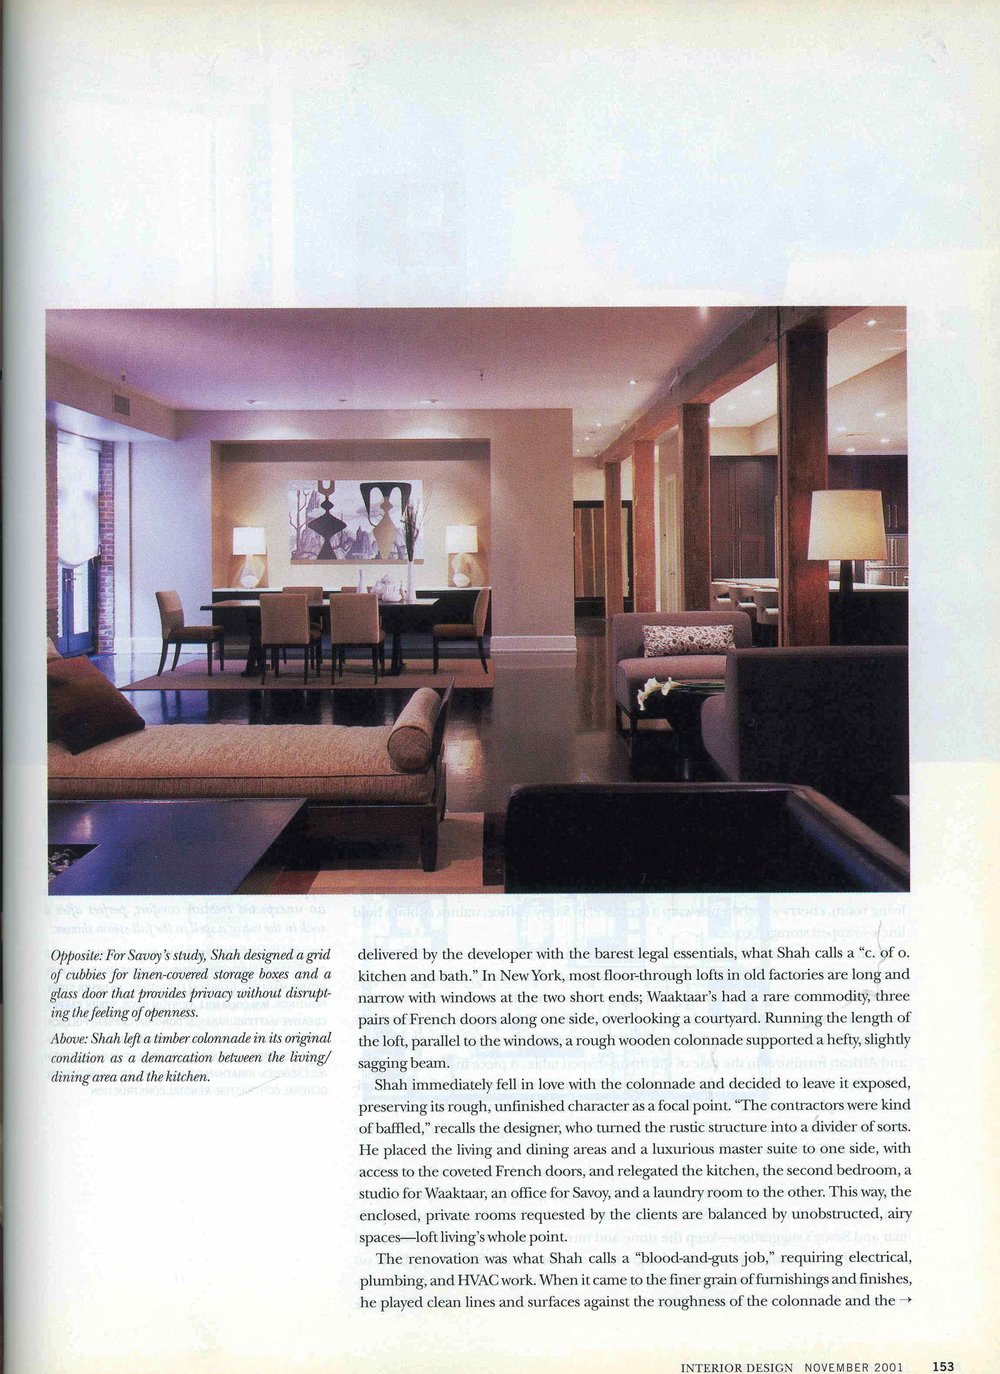 Interior Design_Nov 01_Savoy_Full Article_Page_7.jpg